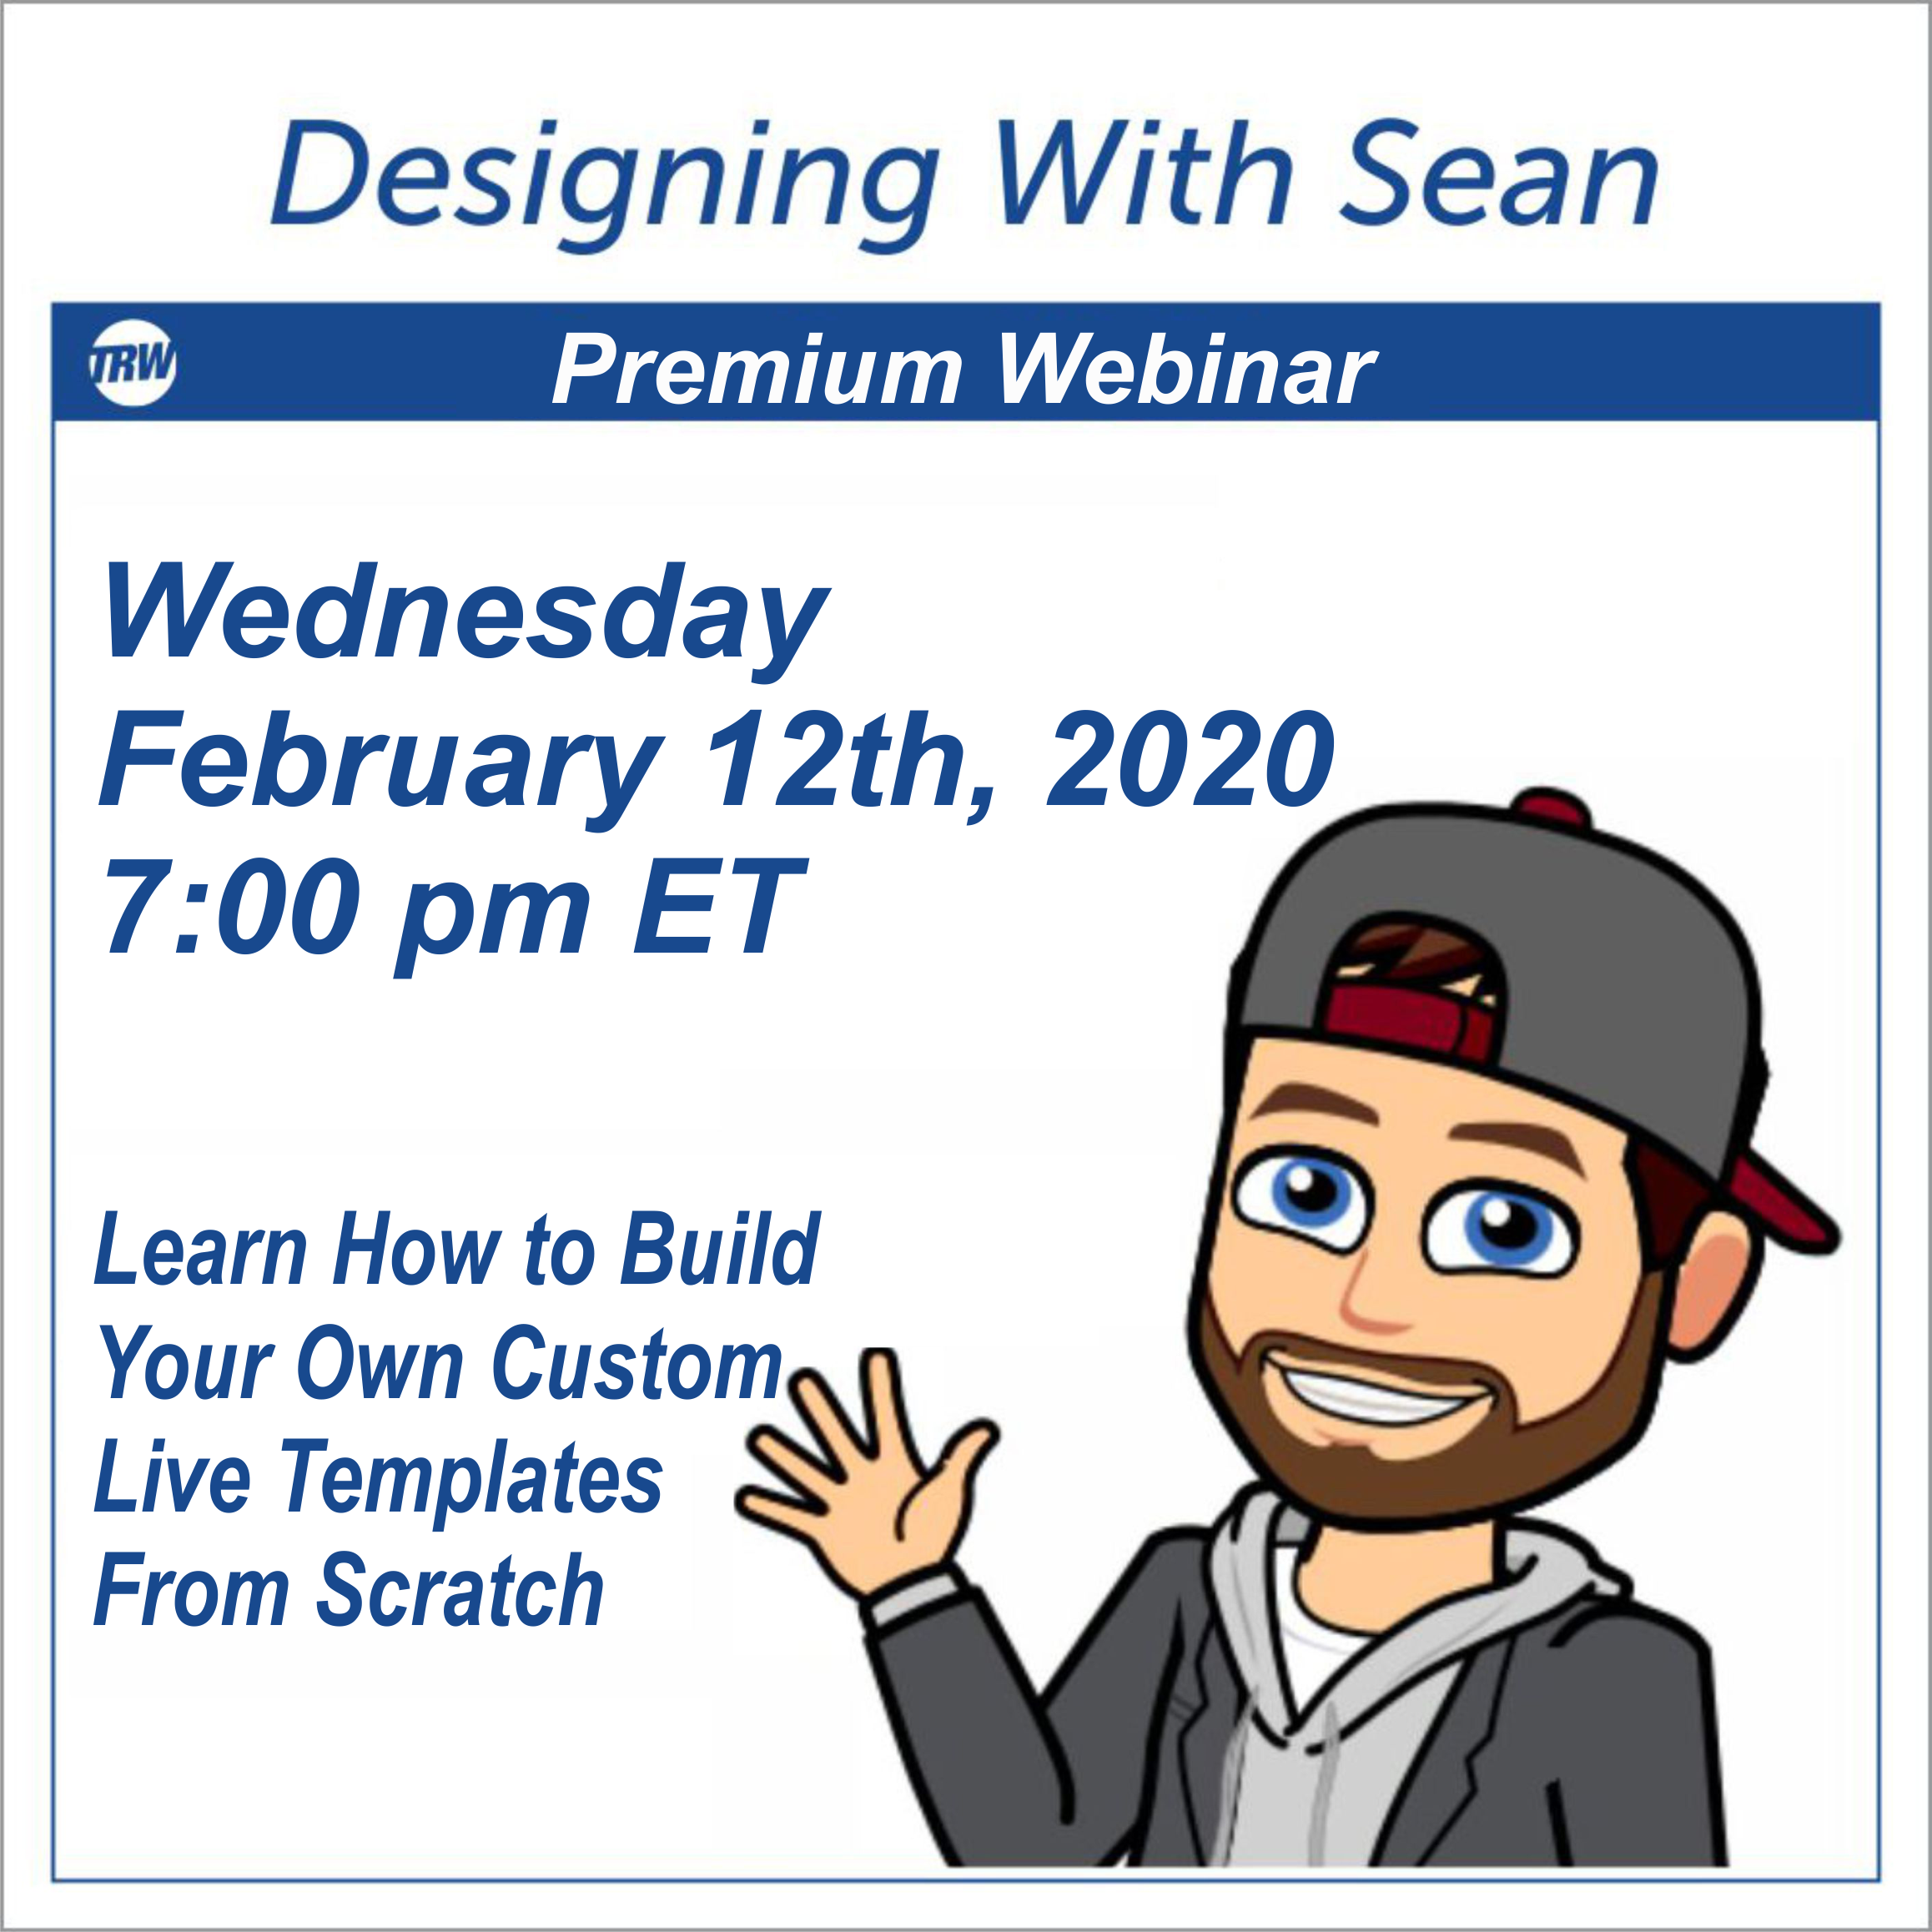 Designing with Sean - February 12th 2020 - Building Custom Live Templates From Scratch